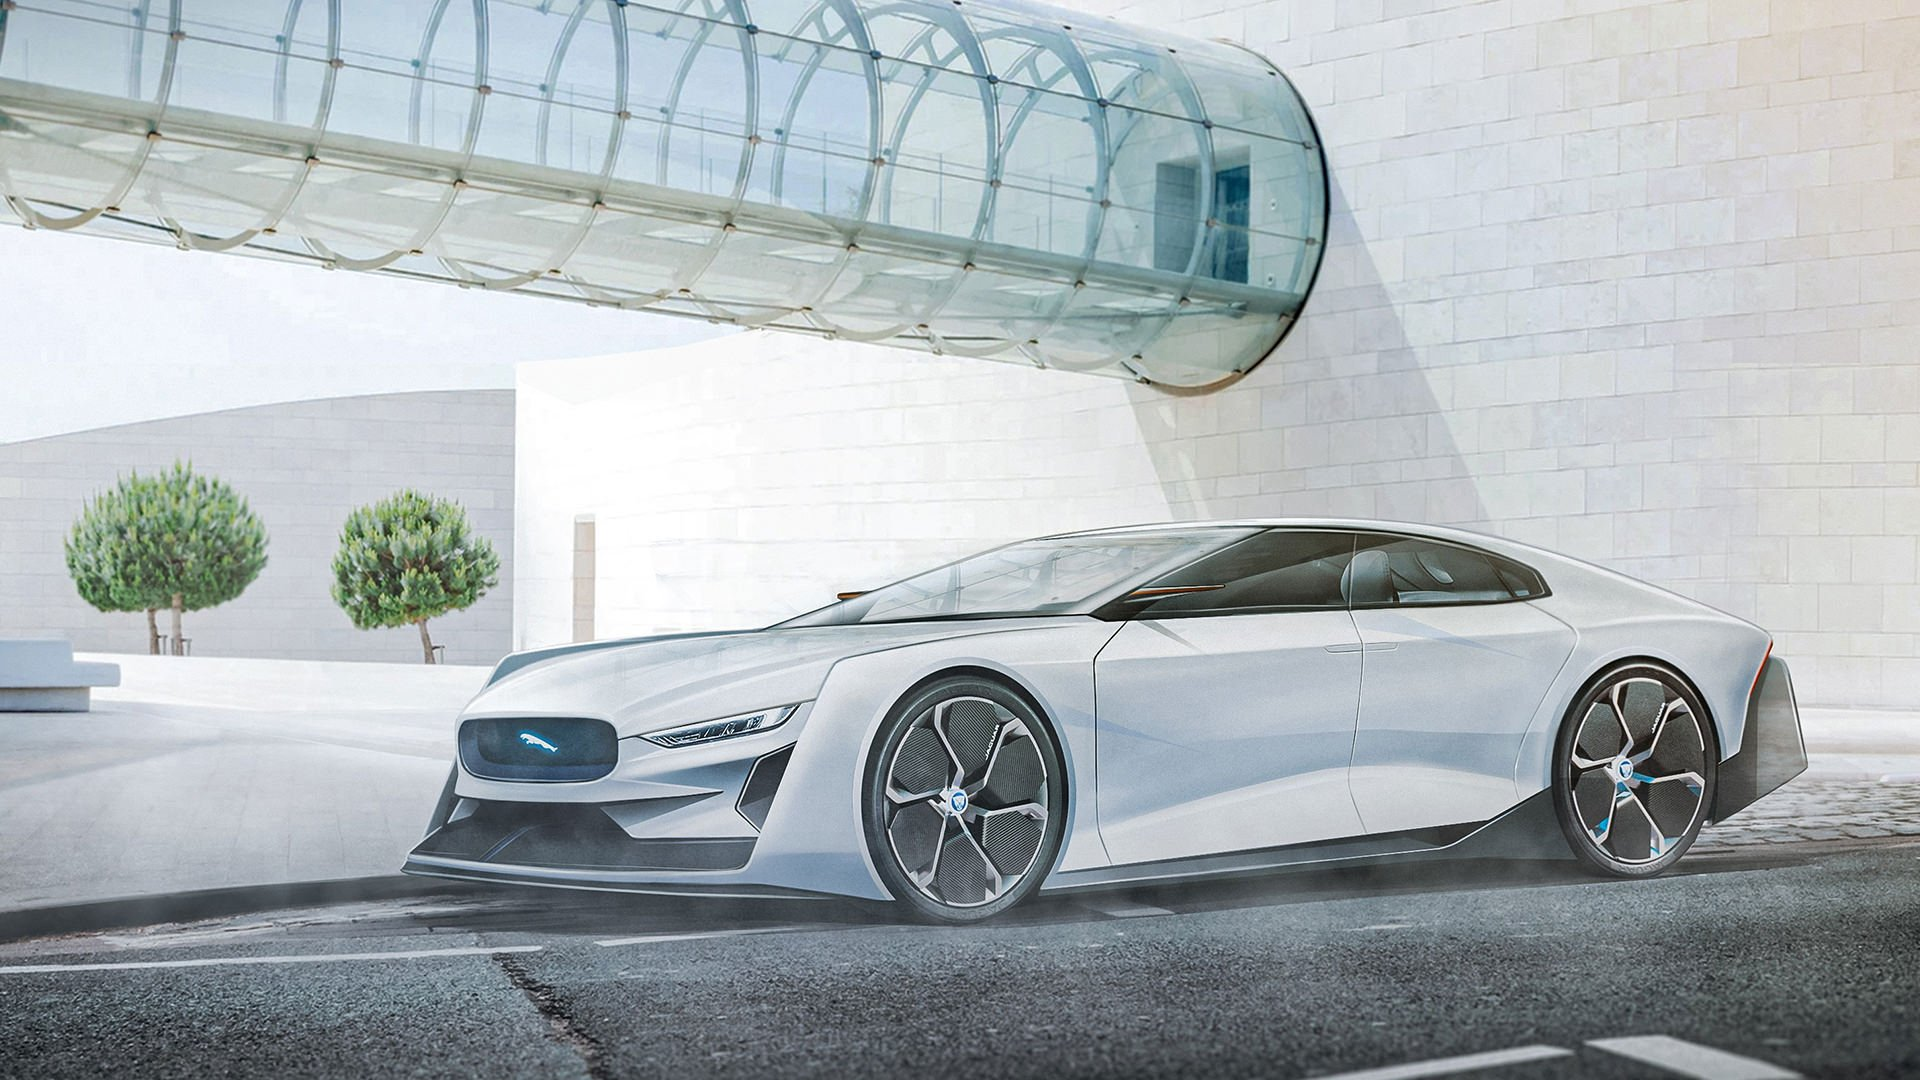 رندر ۲۰۵۰ جگوار / Jaguar XJ 2050 render